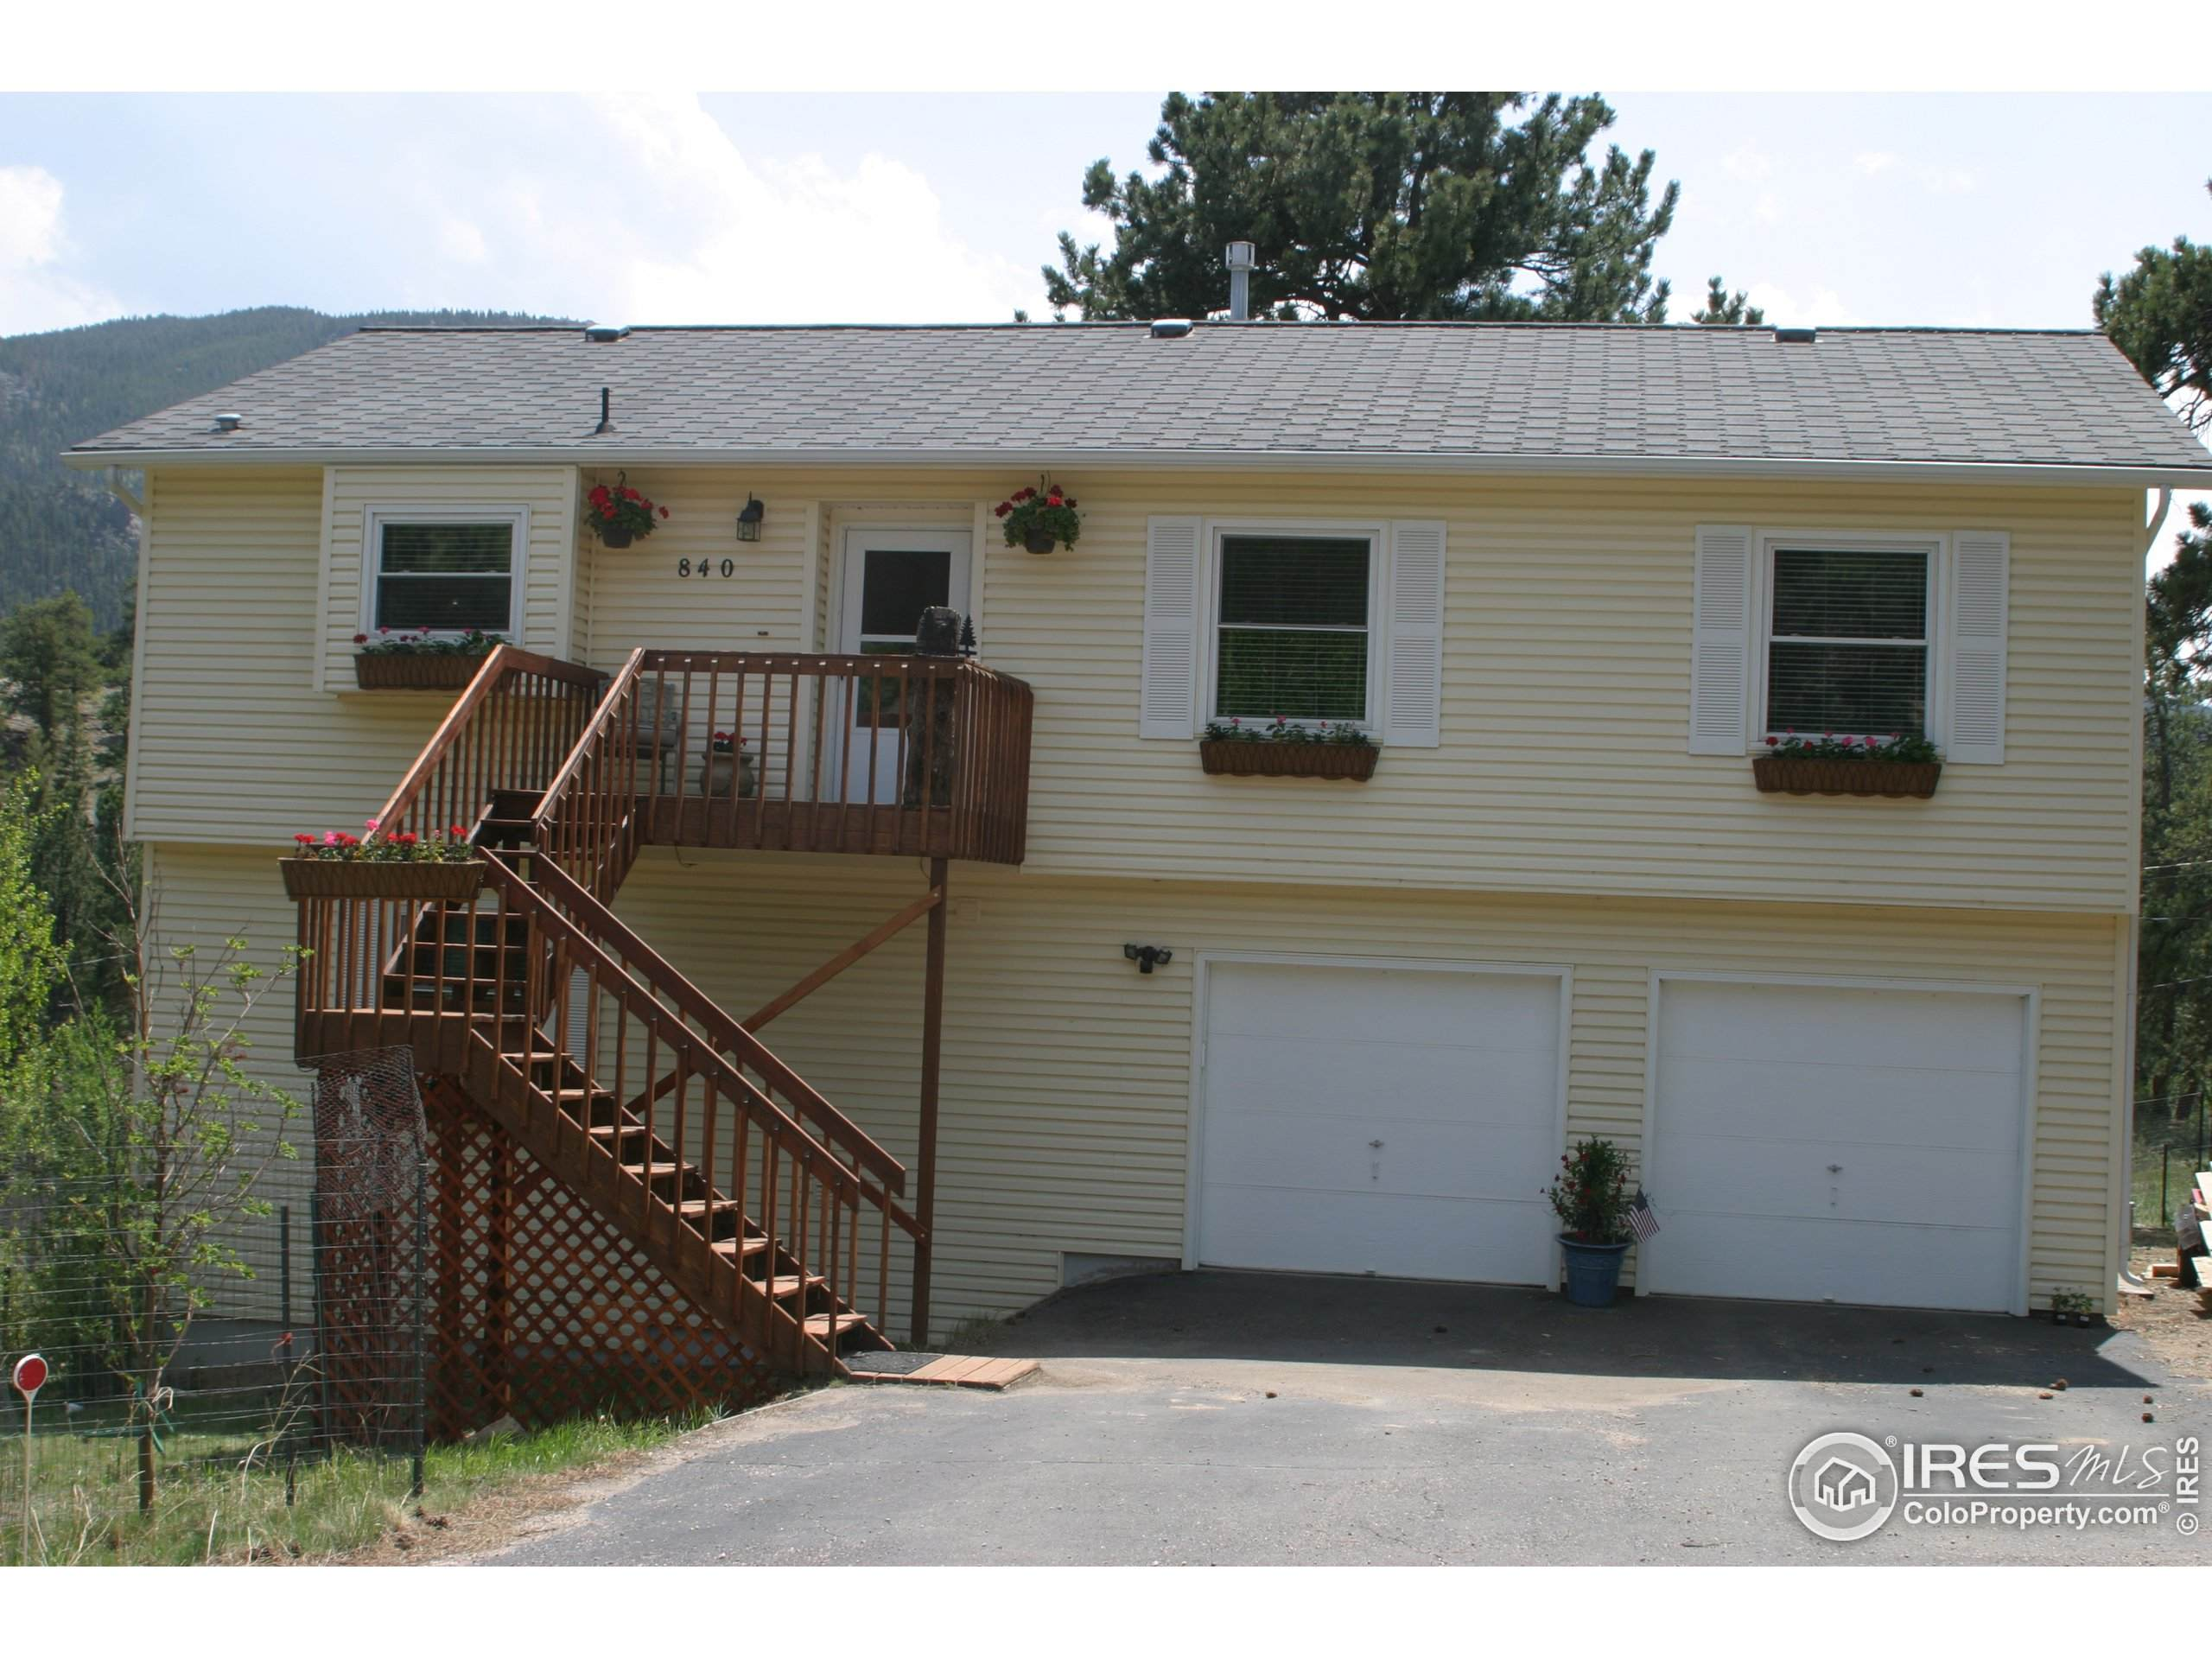 4513 Fawn Trl, Loveland, CO 80537 (MLS #931137) :: HomeSmart Realty Group